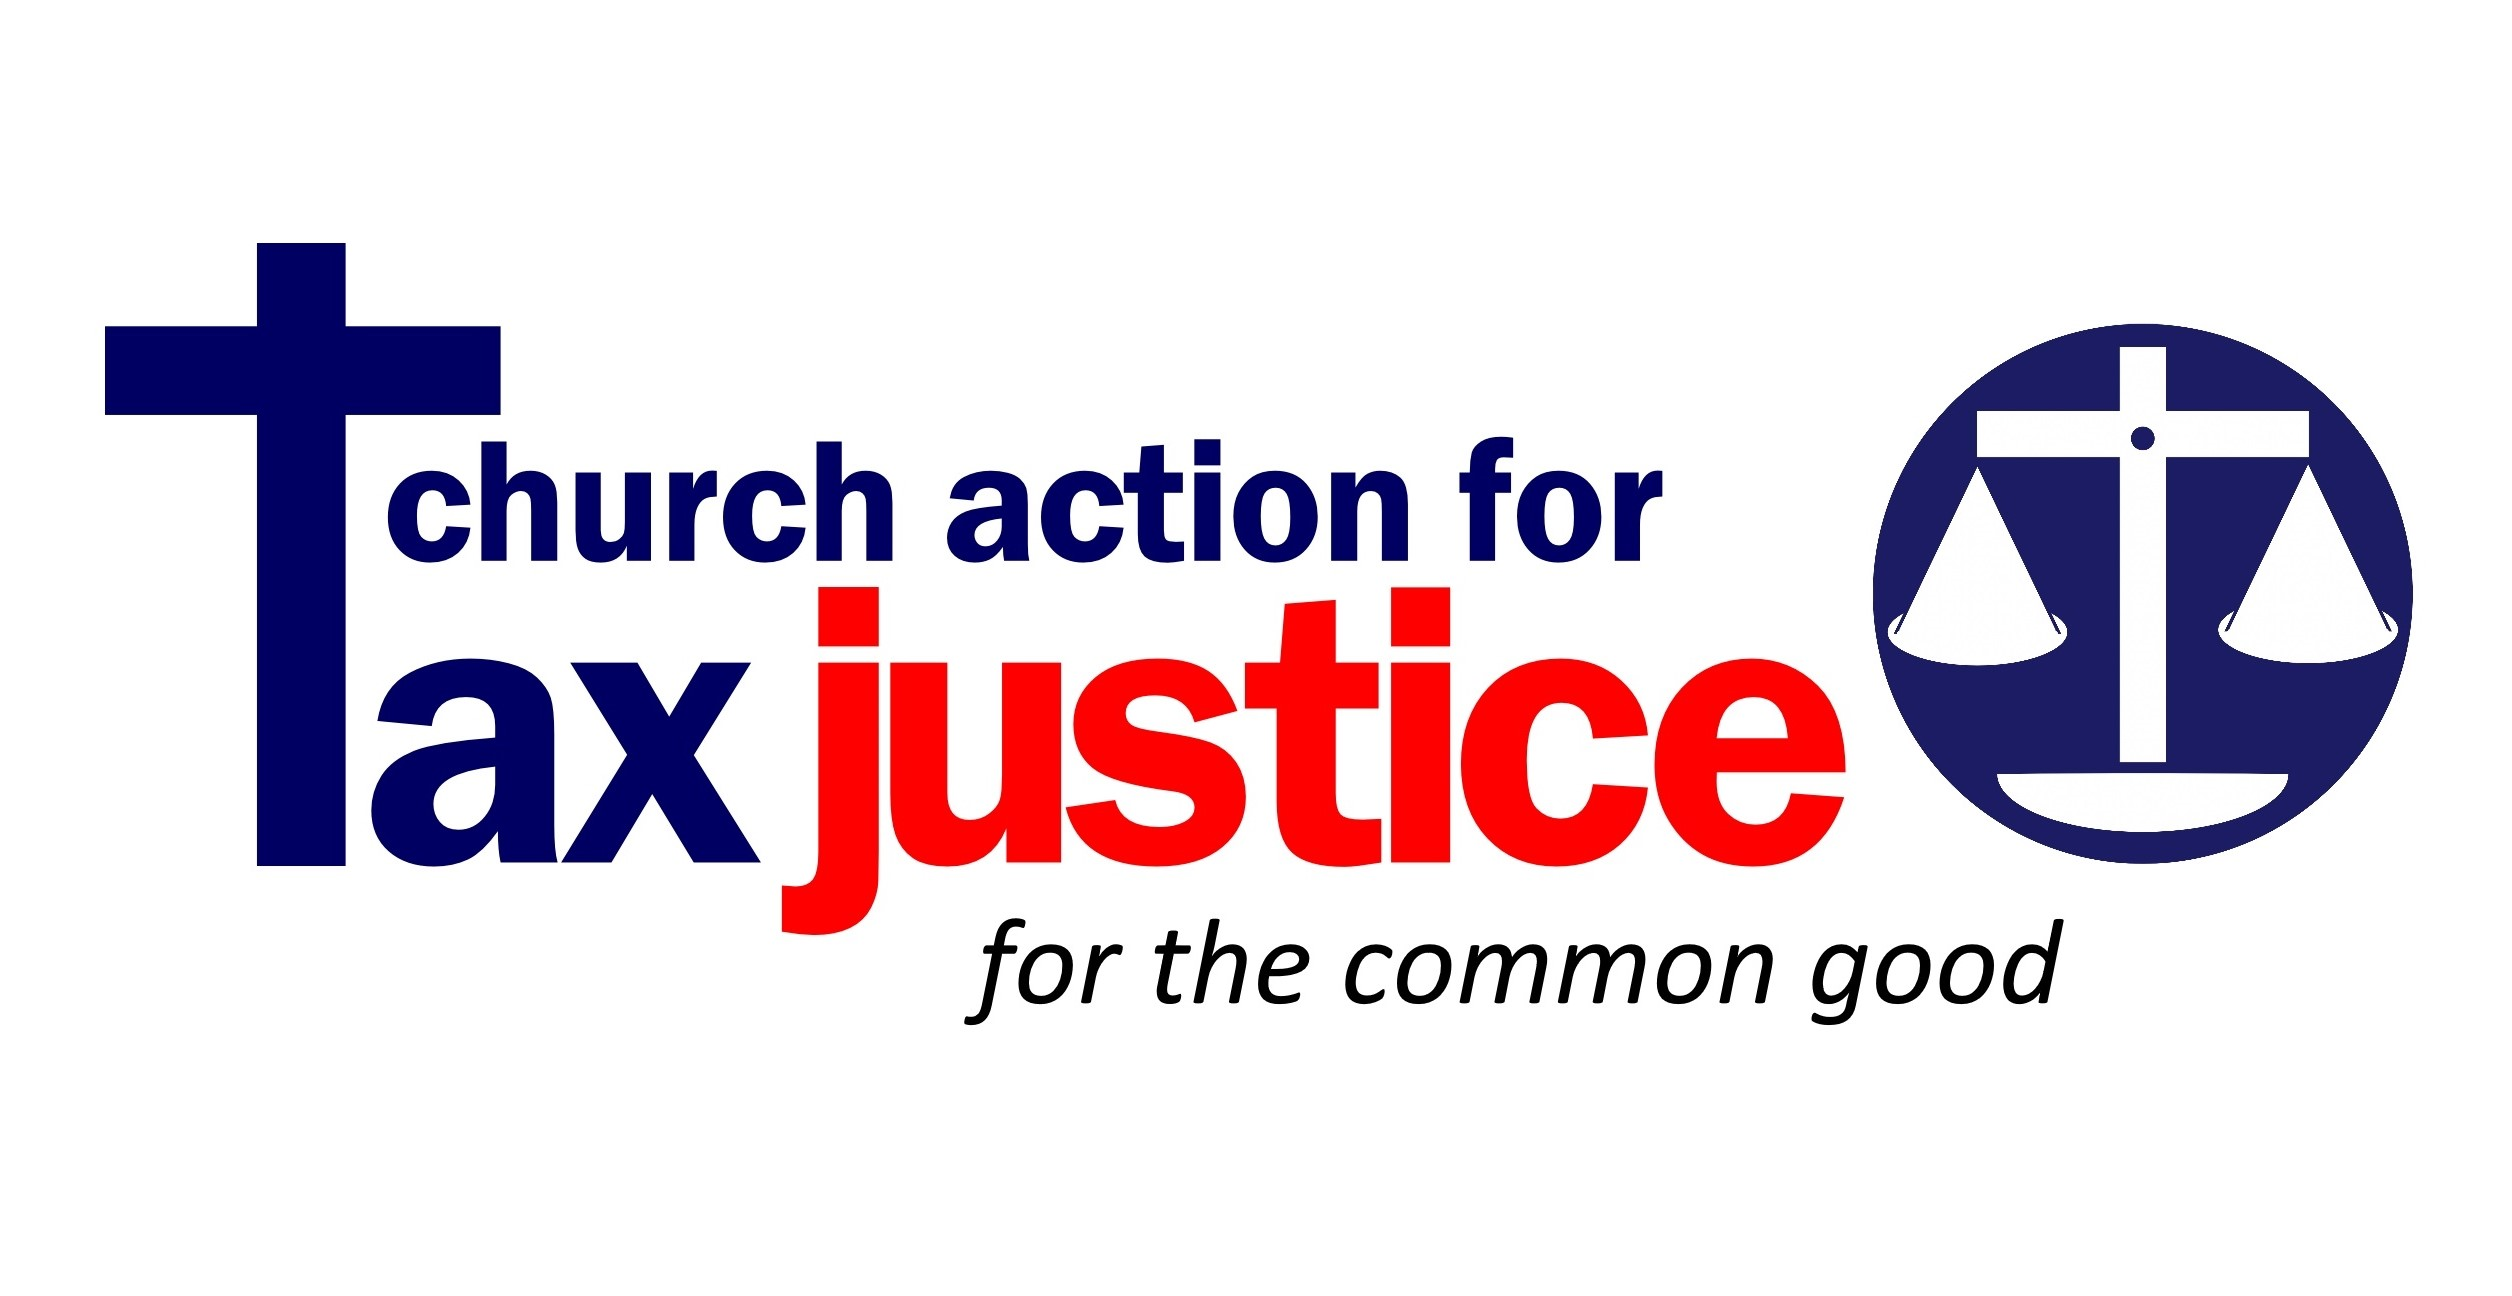 ECCR and Church Action for Tax Justice announce closer partnership